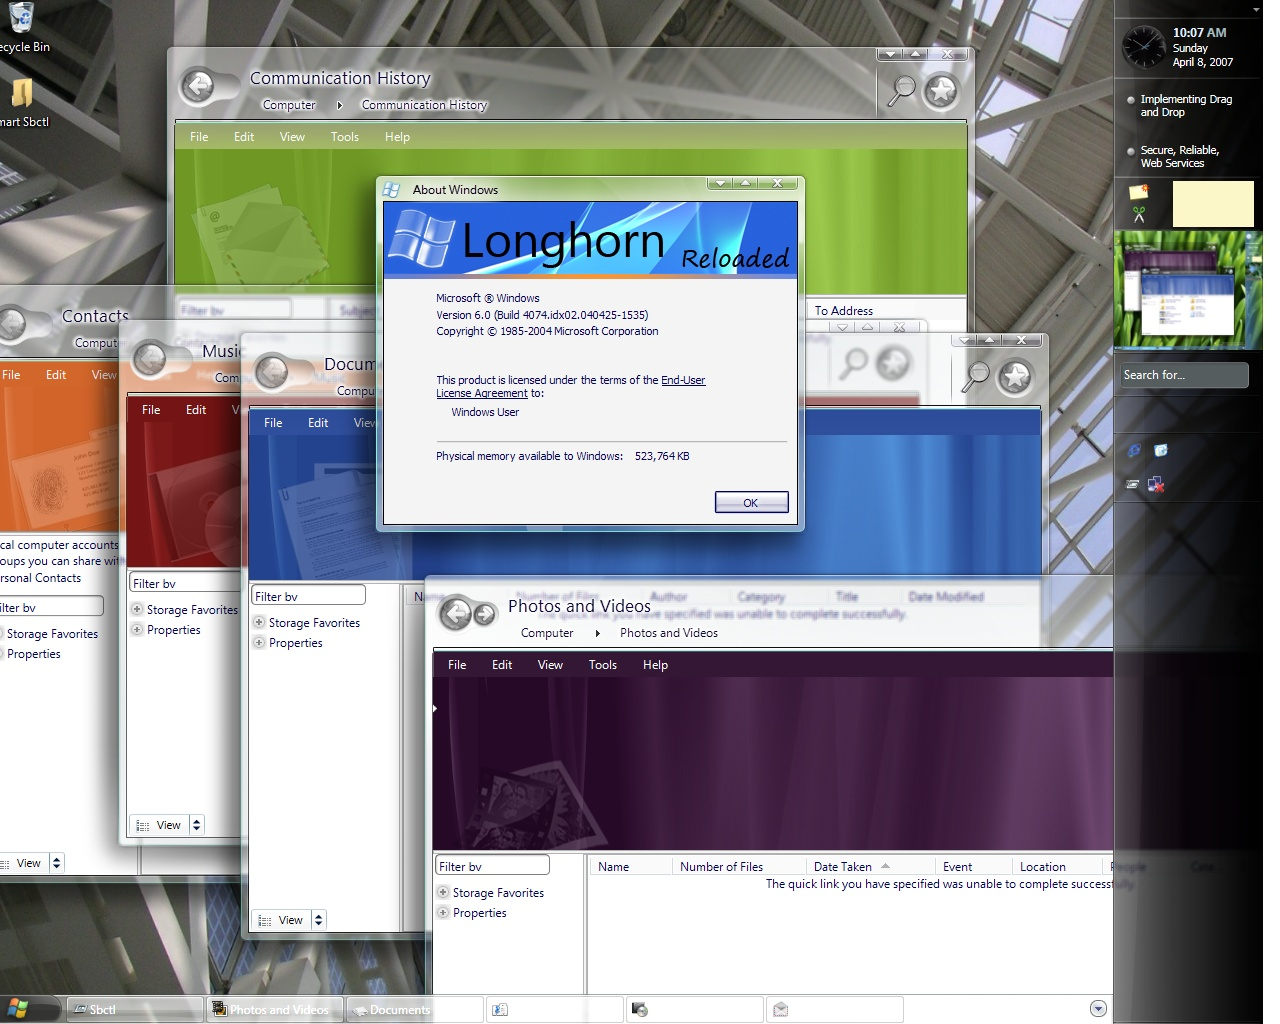 Windows 'Longhorn' Resurrected and Available for Download